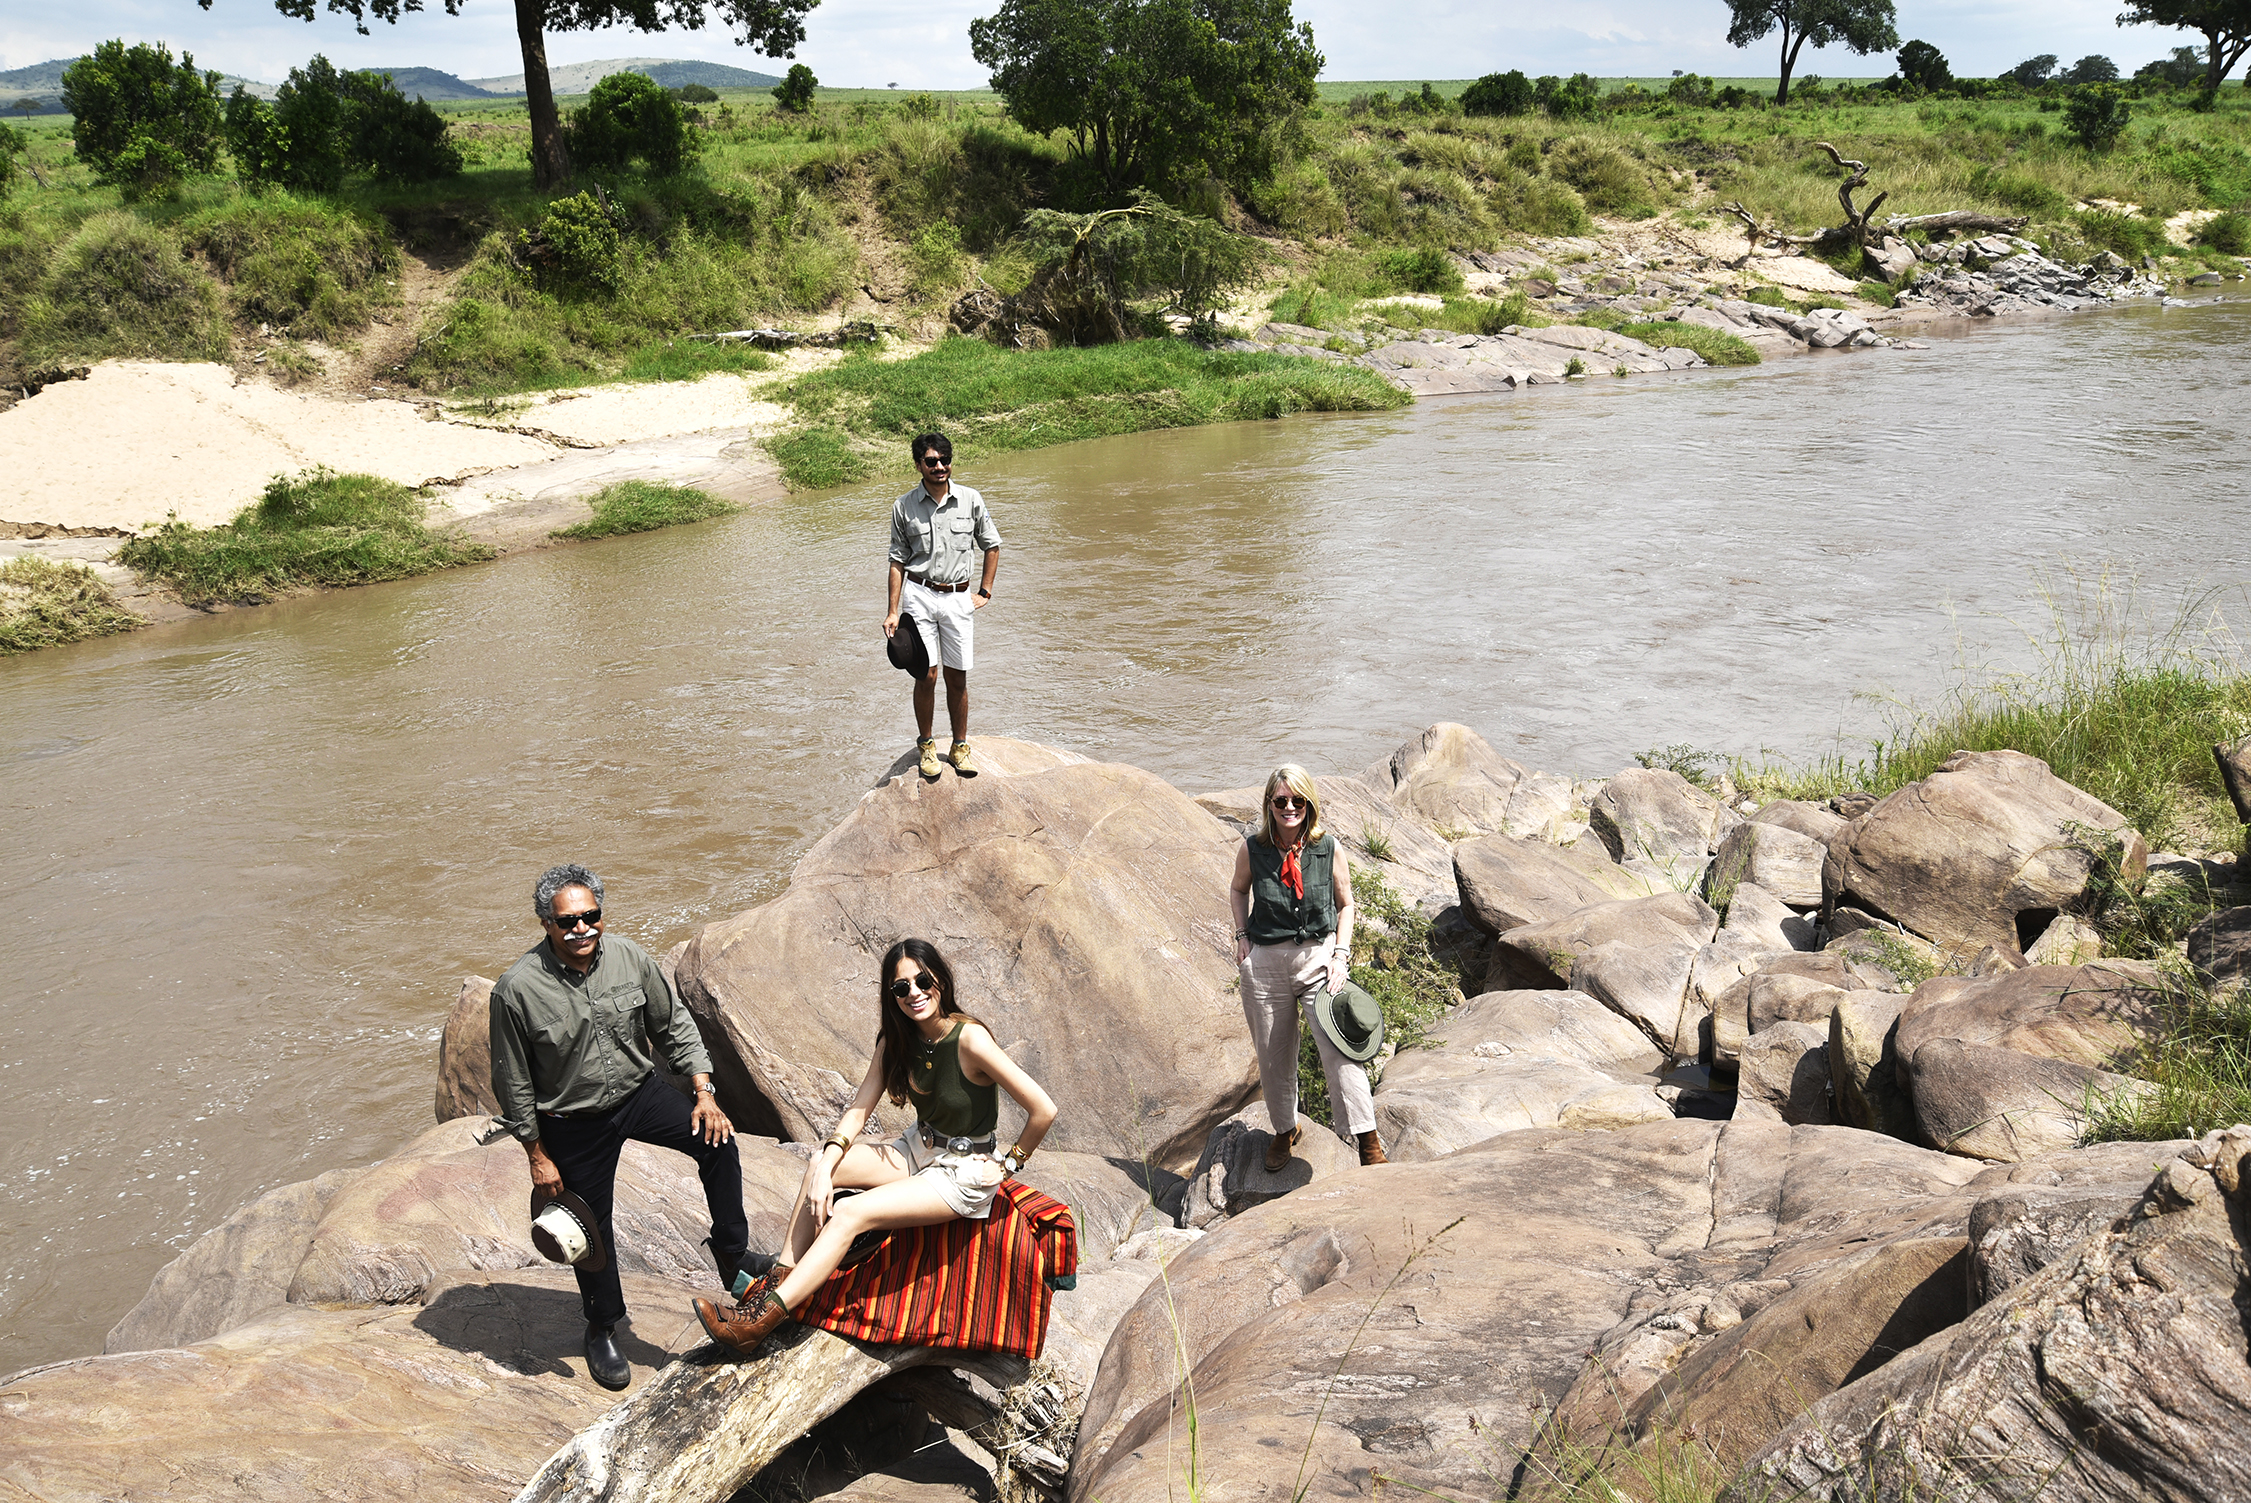 The Pintos standing by a river